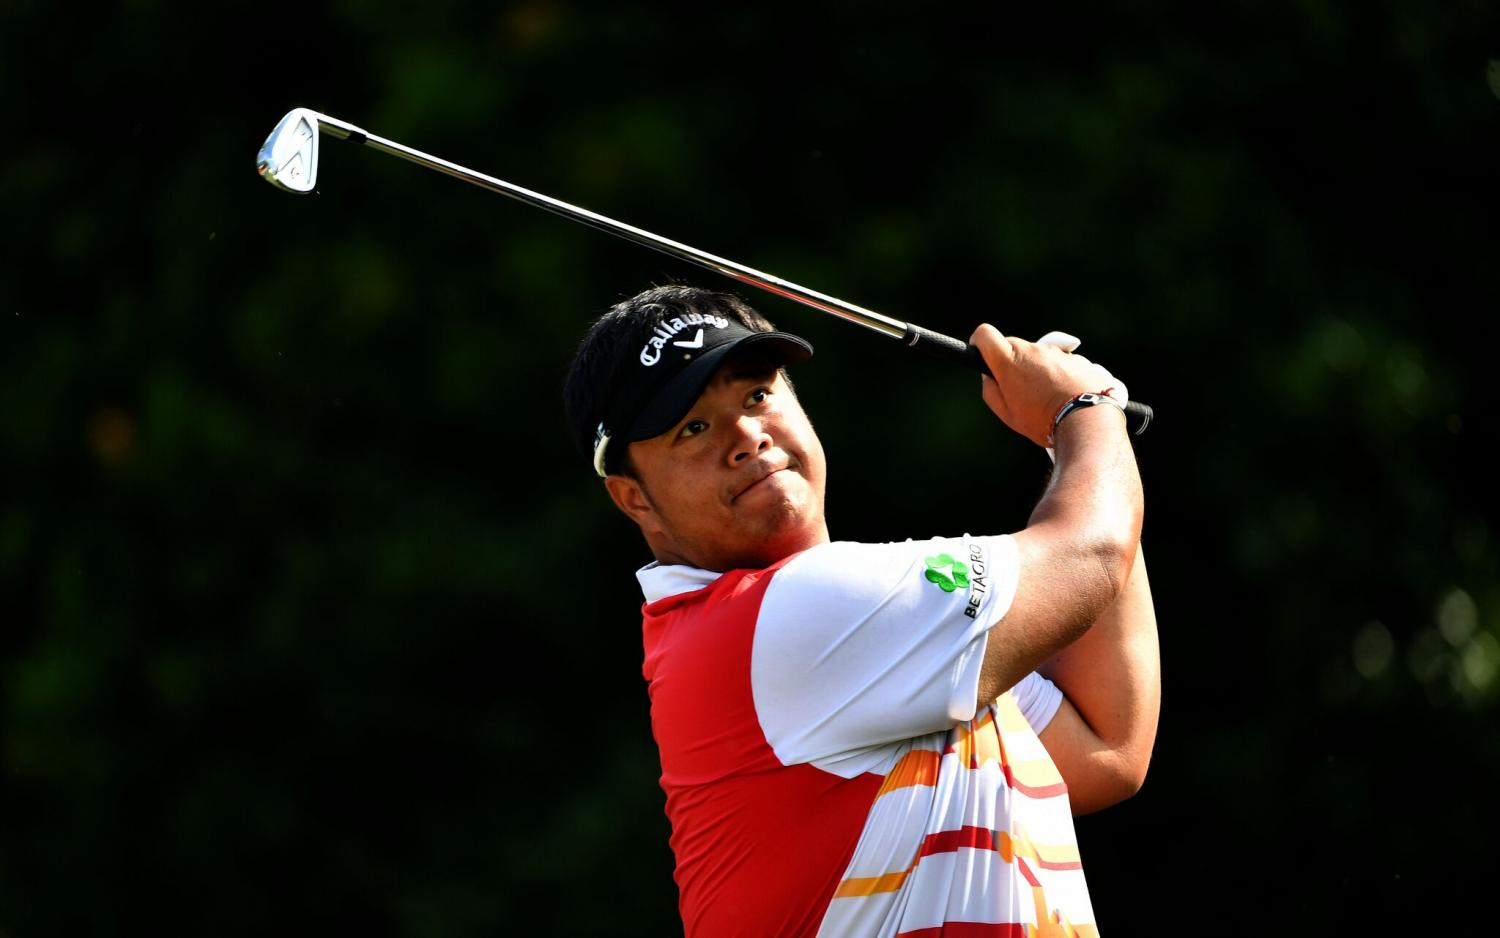 Kiradech Aphibarnrat is the first and still the only PGA Tour member from Thailand.